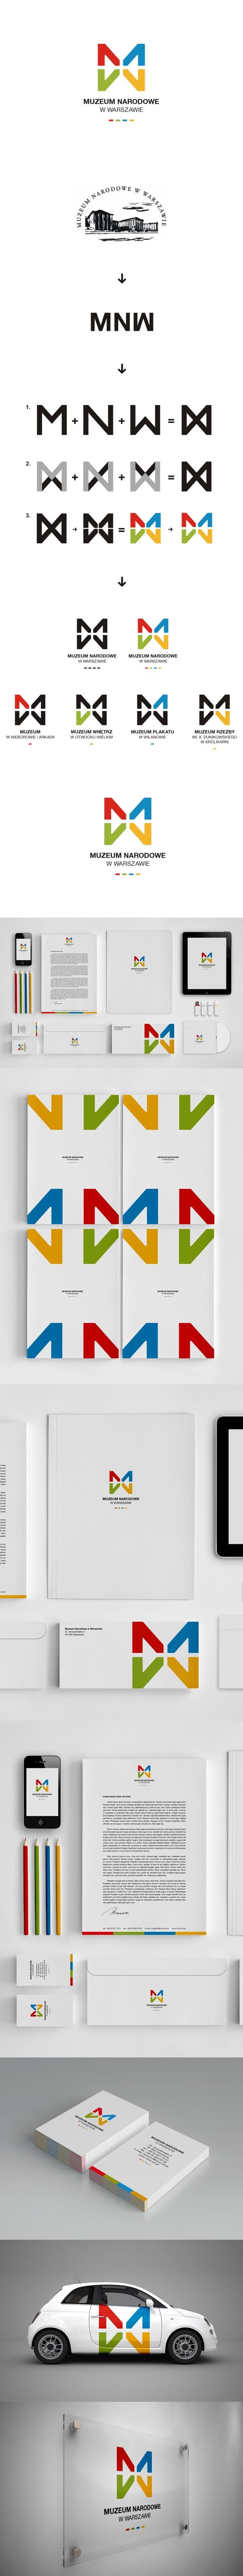 Simple but clever so never a dull moment at every turn. Everything works very well together in this brand identity system.